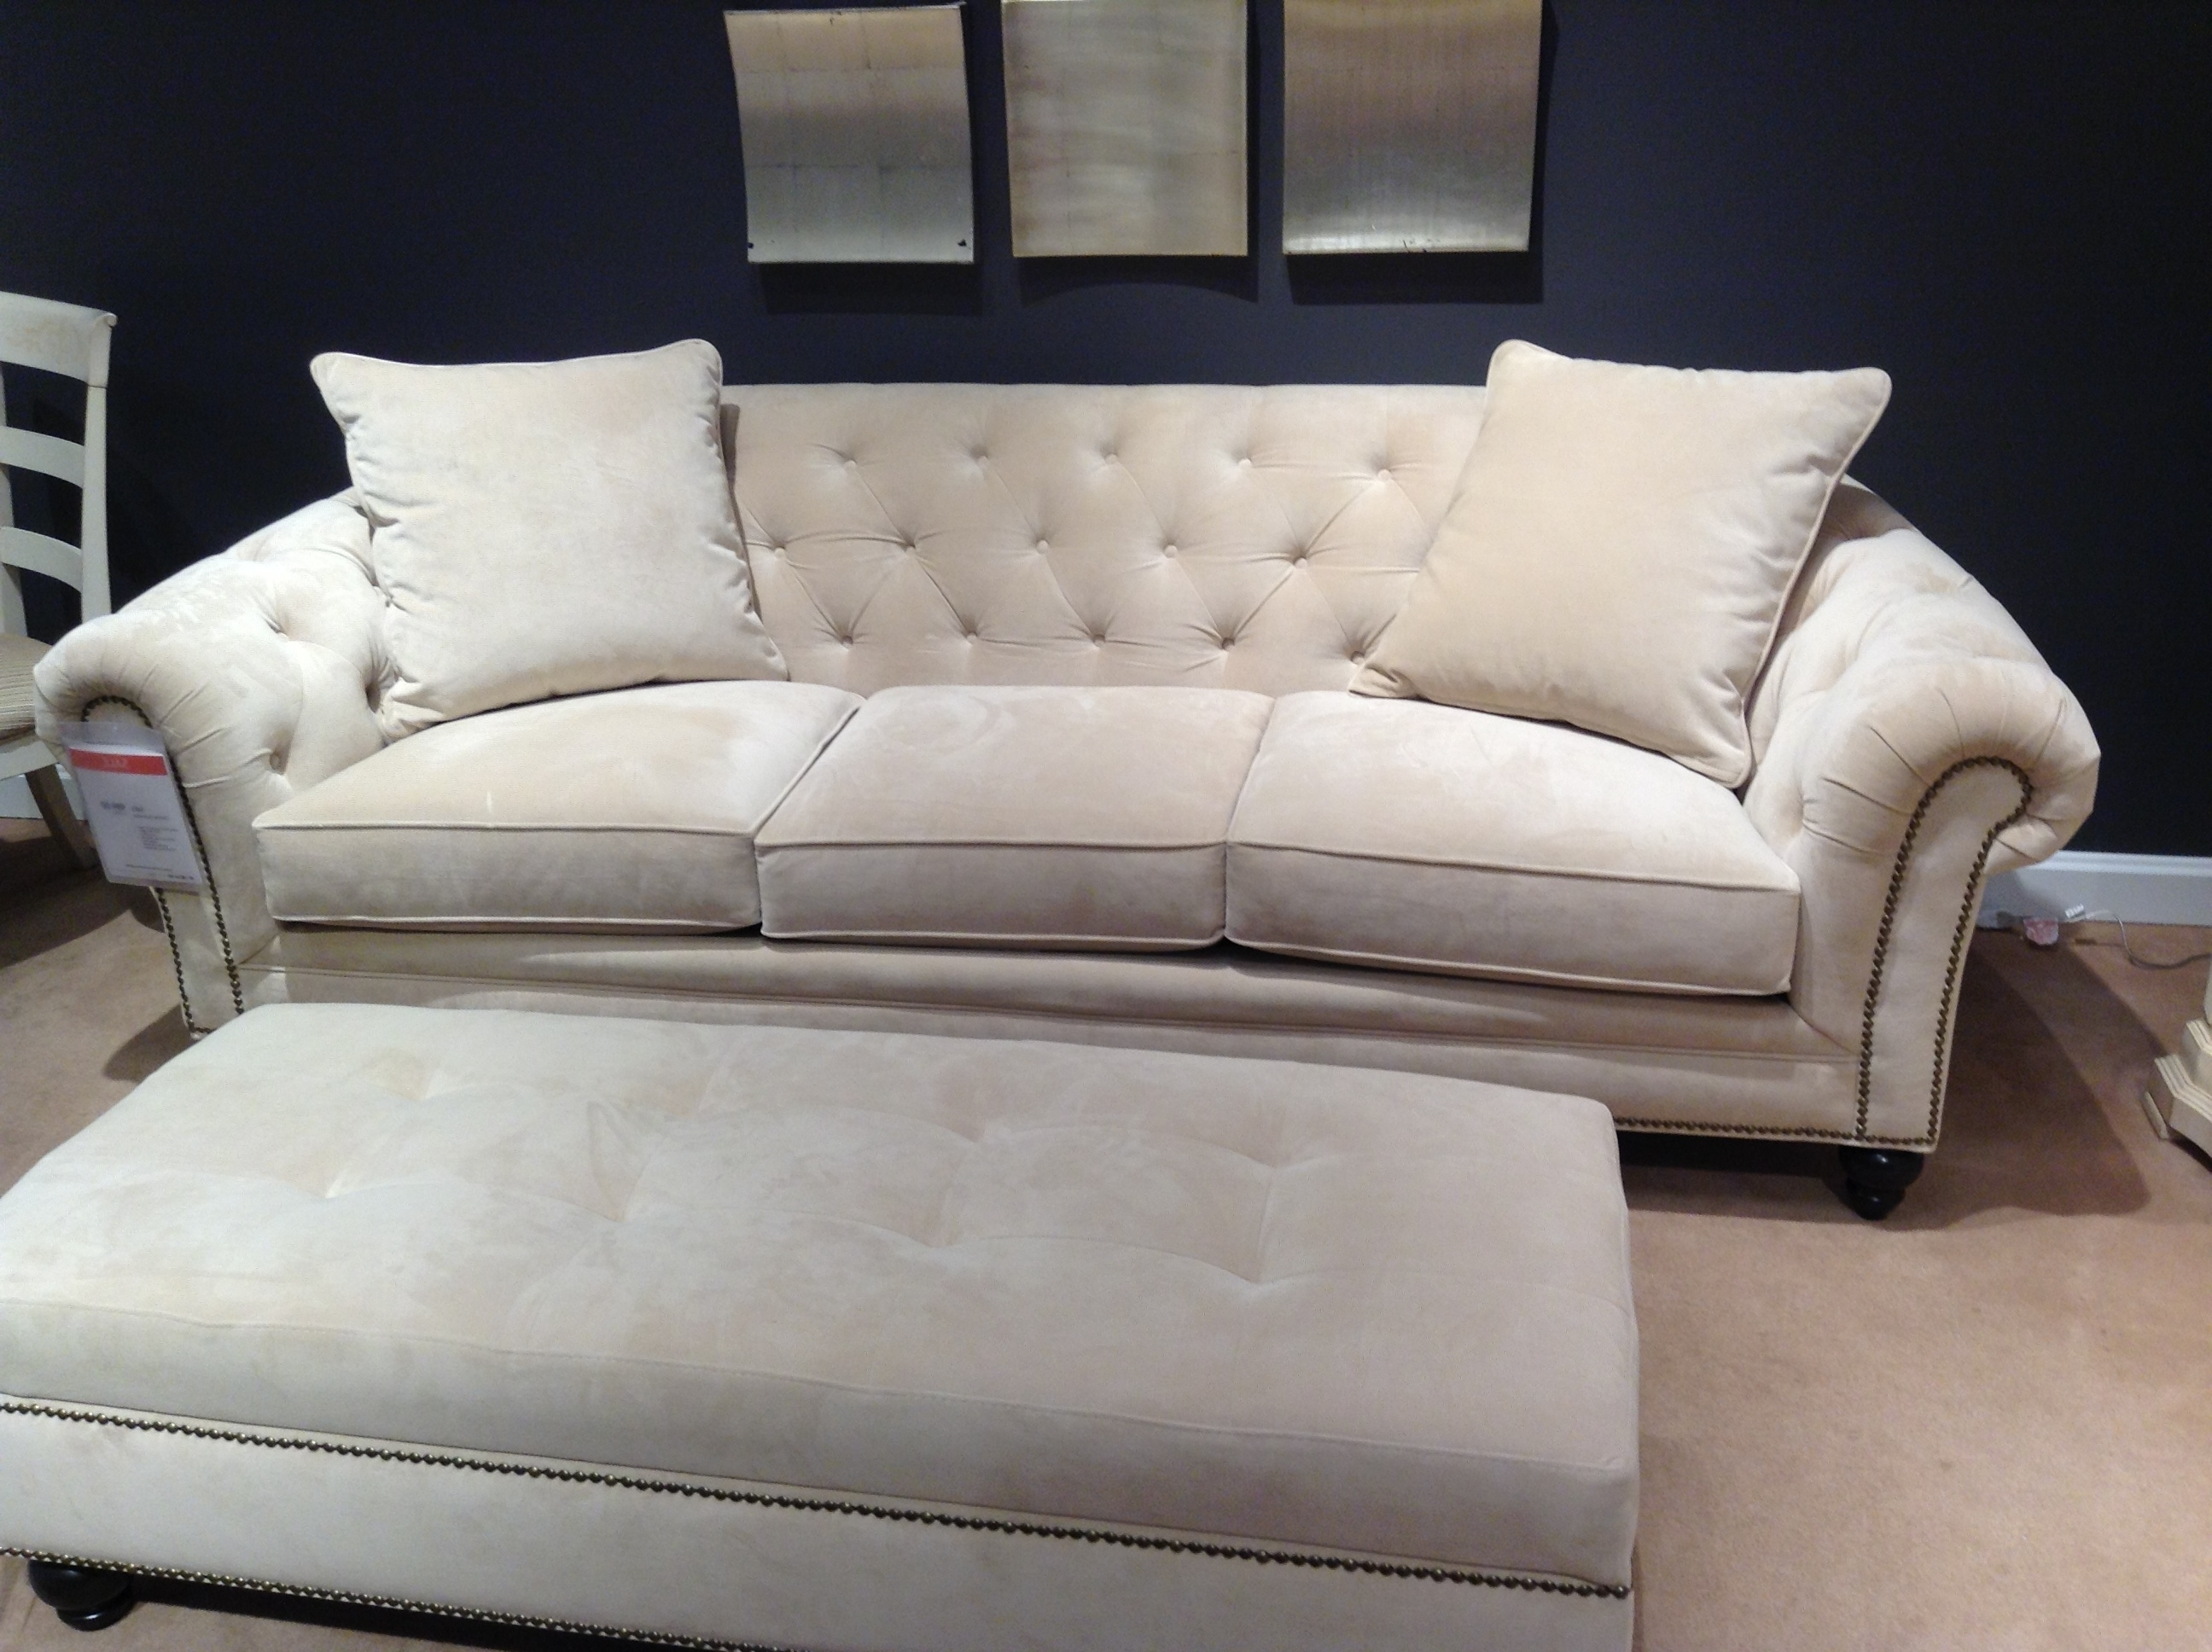 Macys Sofas Inside 2018 Elliot Sofa Bed Macy's • Sofa Bed (View 6 of 20)